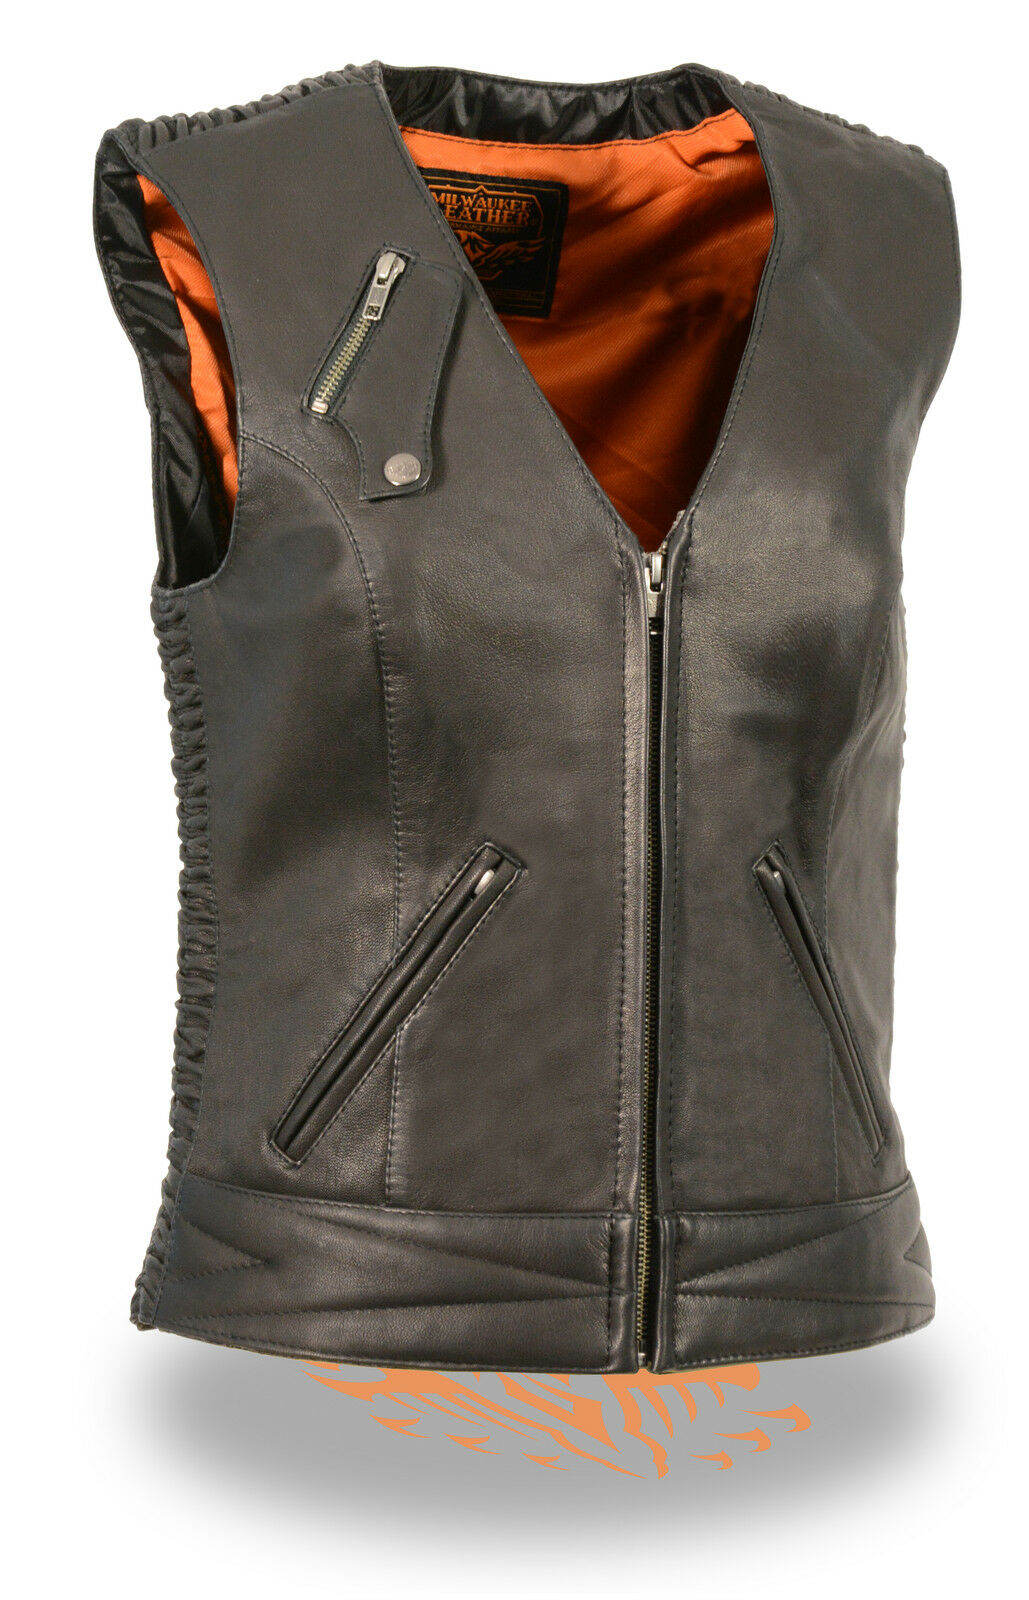 WOMEN'S MOTORCYCLE RIDING BUTTER SOFT BLK LEATHER ZIPPER VEST REFLECTIVE PIPING